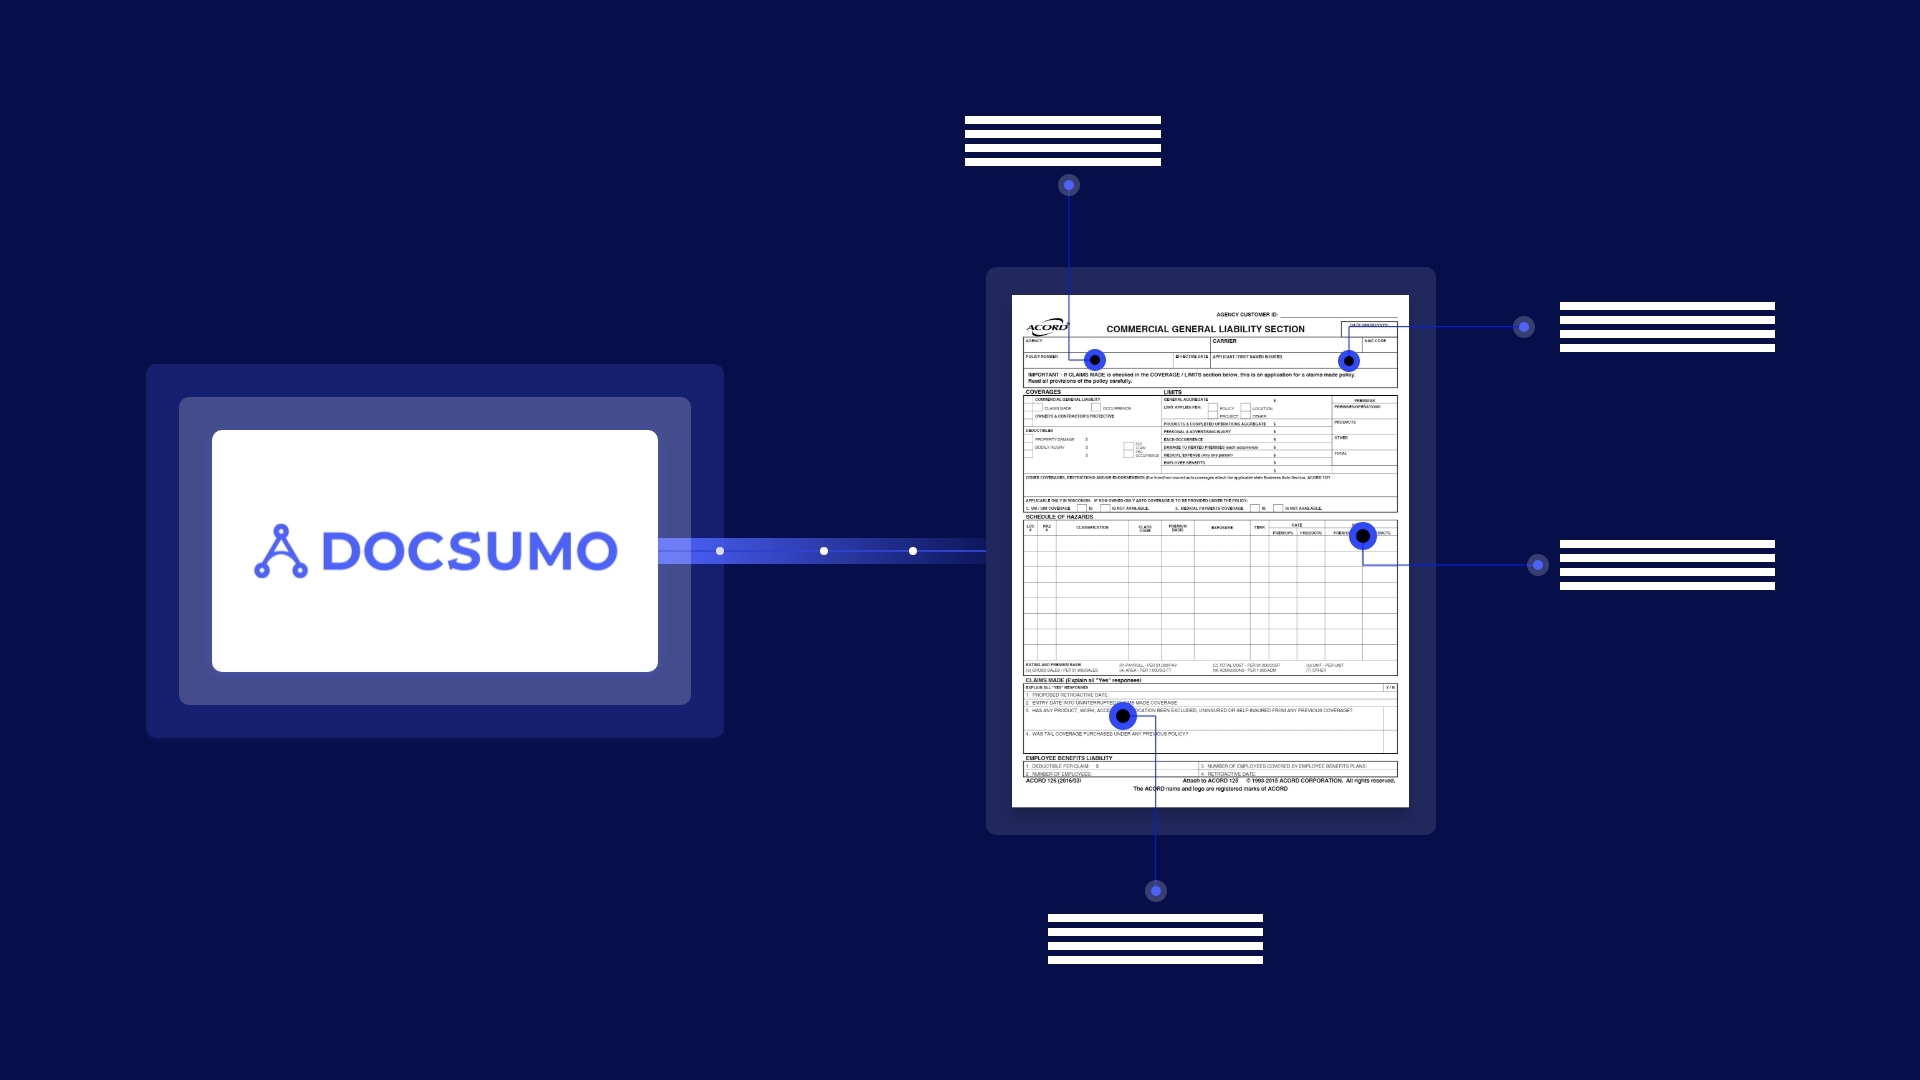 How to train a New Document using Docsumo